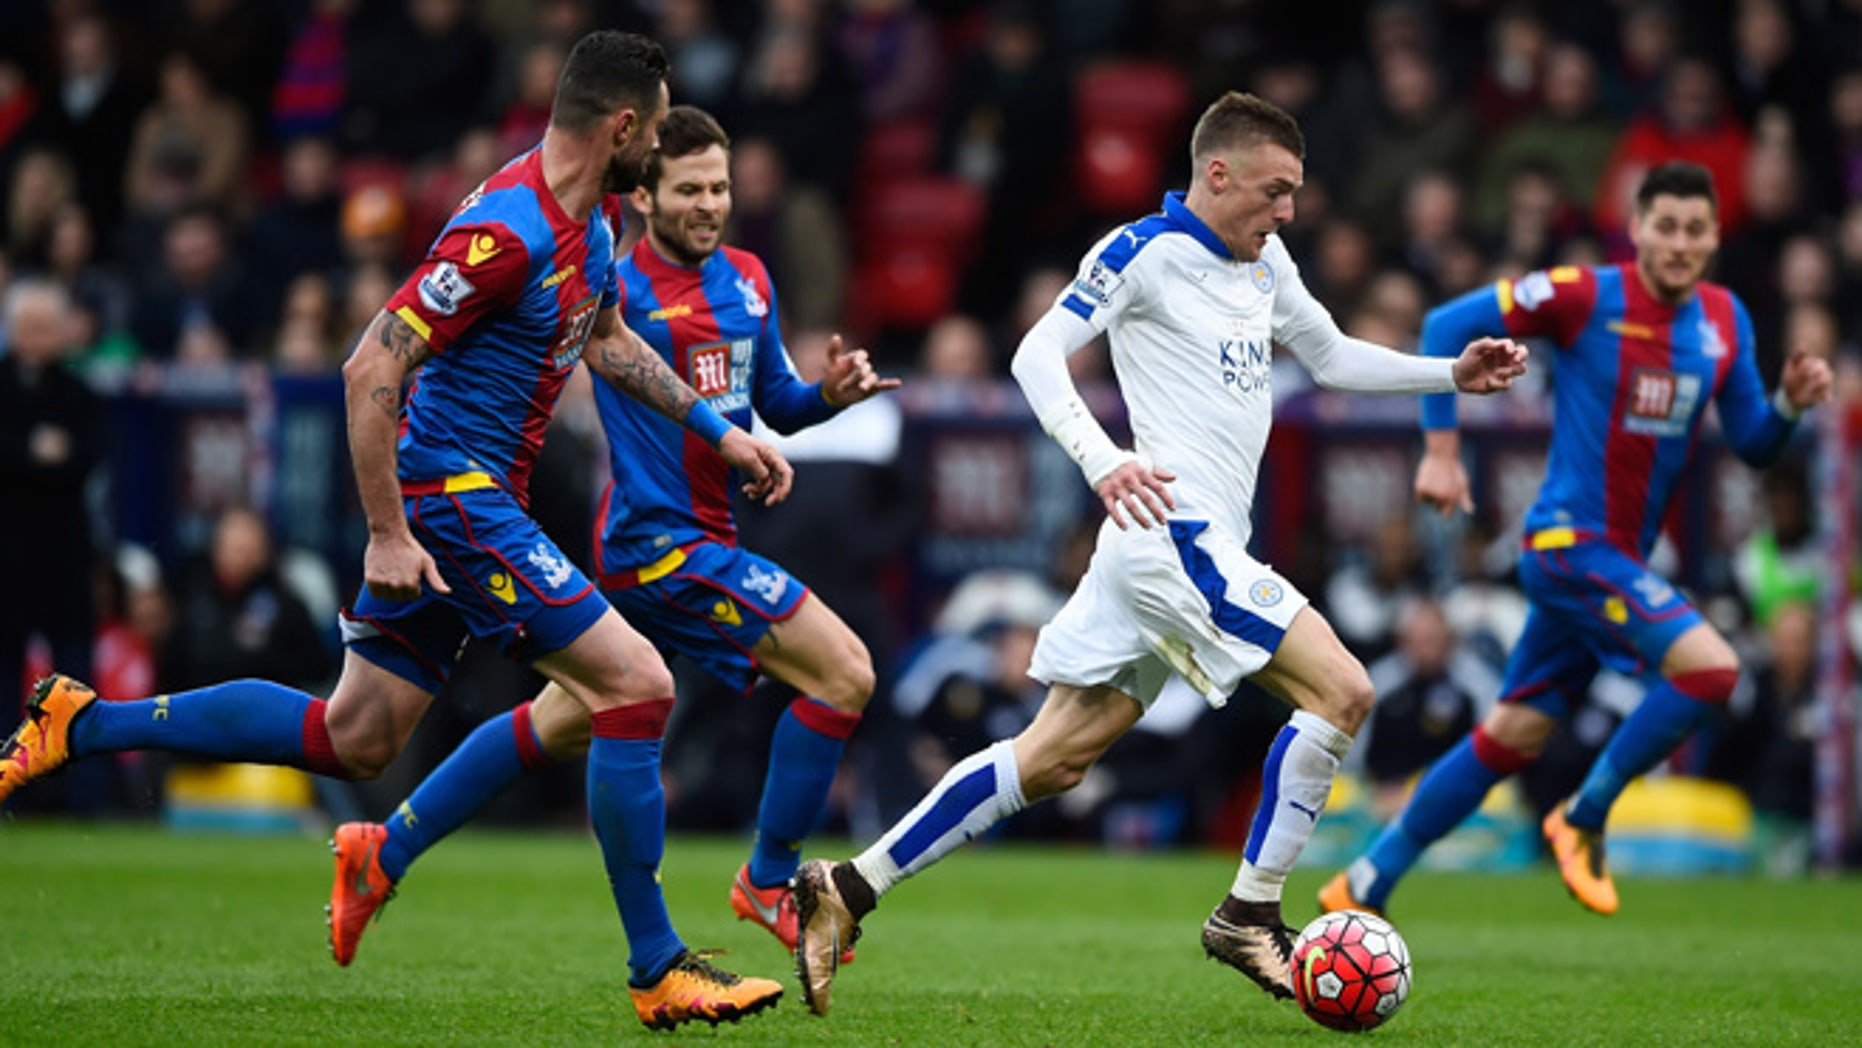 LONDON, ENGLAND - MARCH 19:  Jamie Vardy of Leicester City runs with the ball while Damien Delaney of Crystal Palace tries to stop during the Barclays Premier League match between Crystal Palace and Leicester City at Selhurst Park on March 19, 2016 in London, United Kingdom.  (Photo by Mike Hewitt/Getty Images)